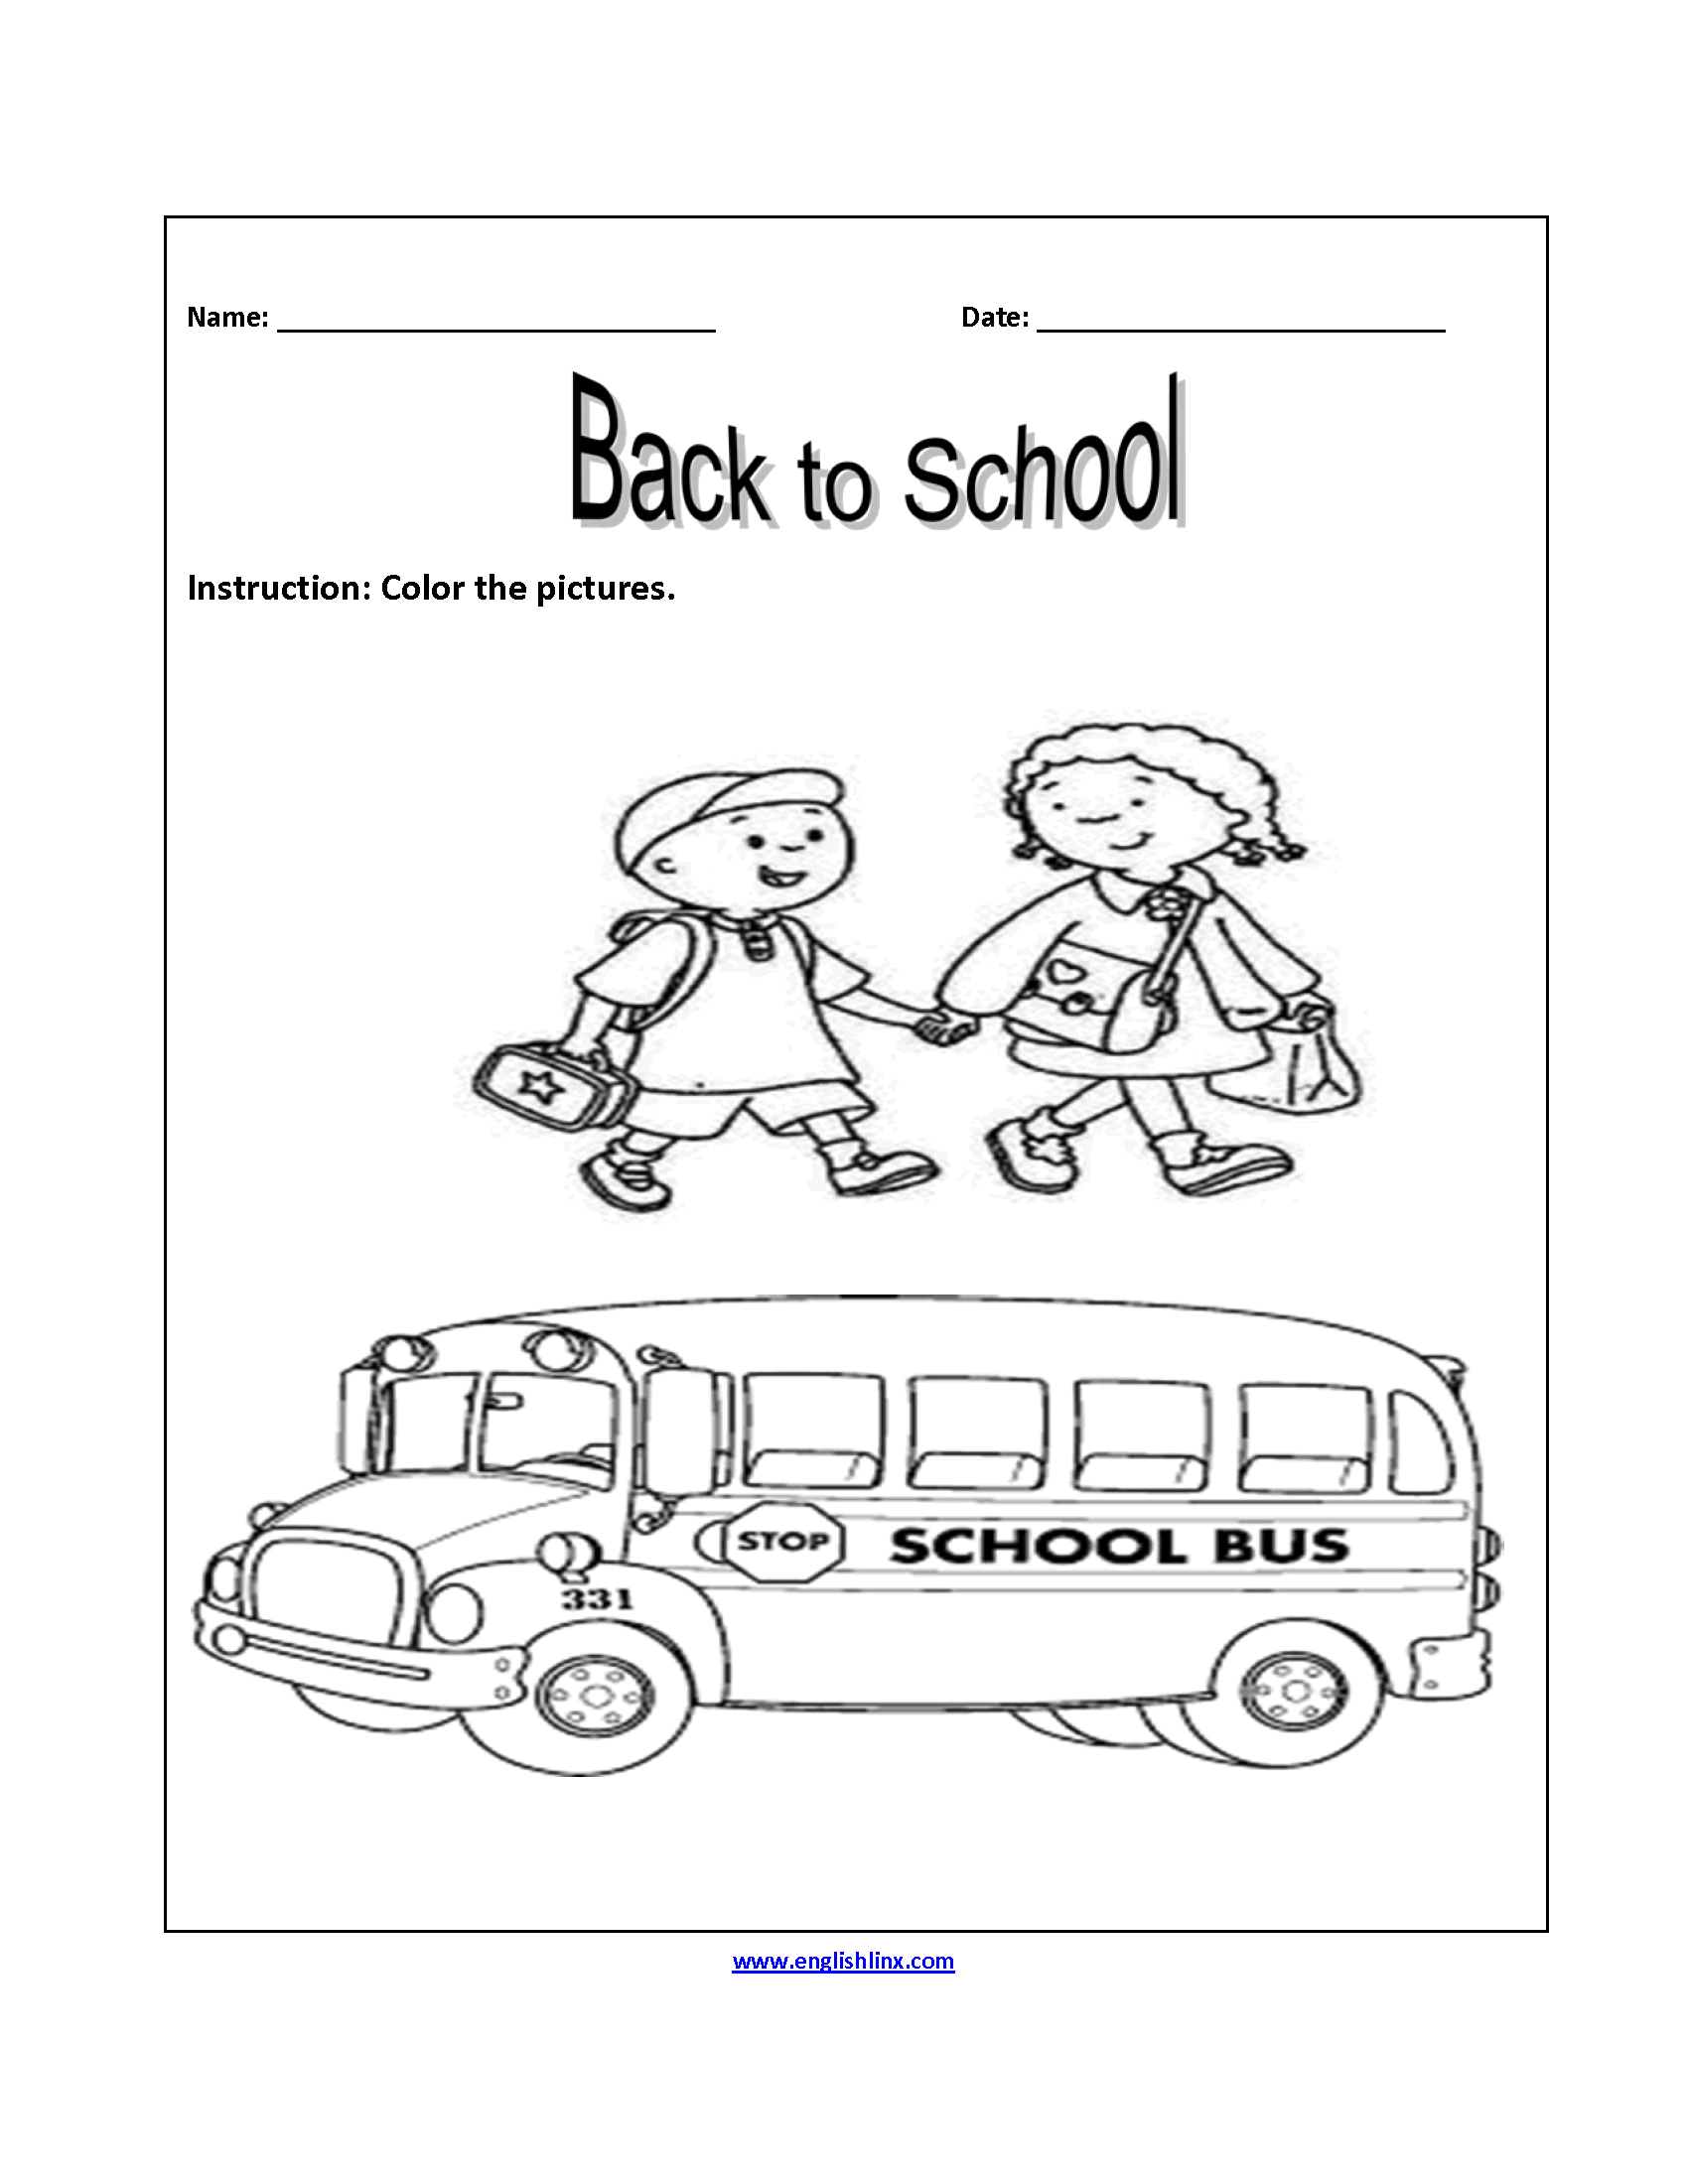 Color Pictures Back To School Worksheets